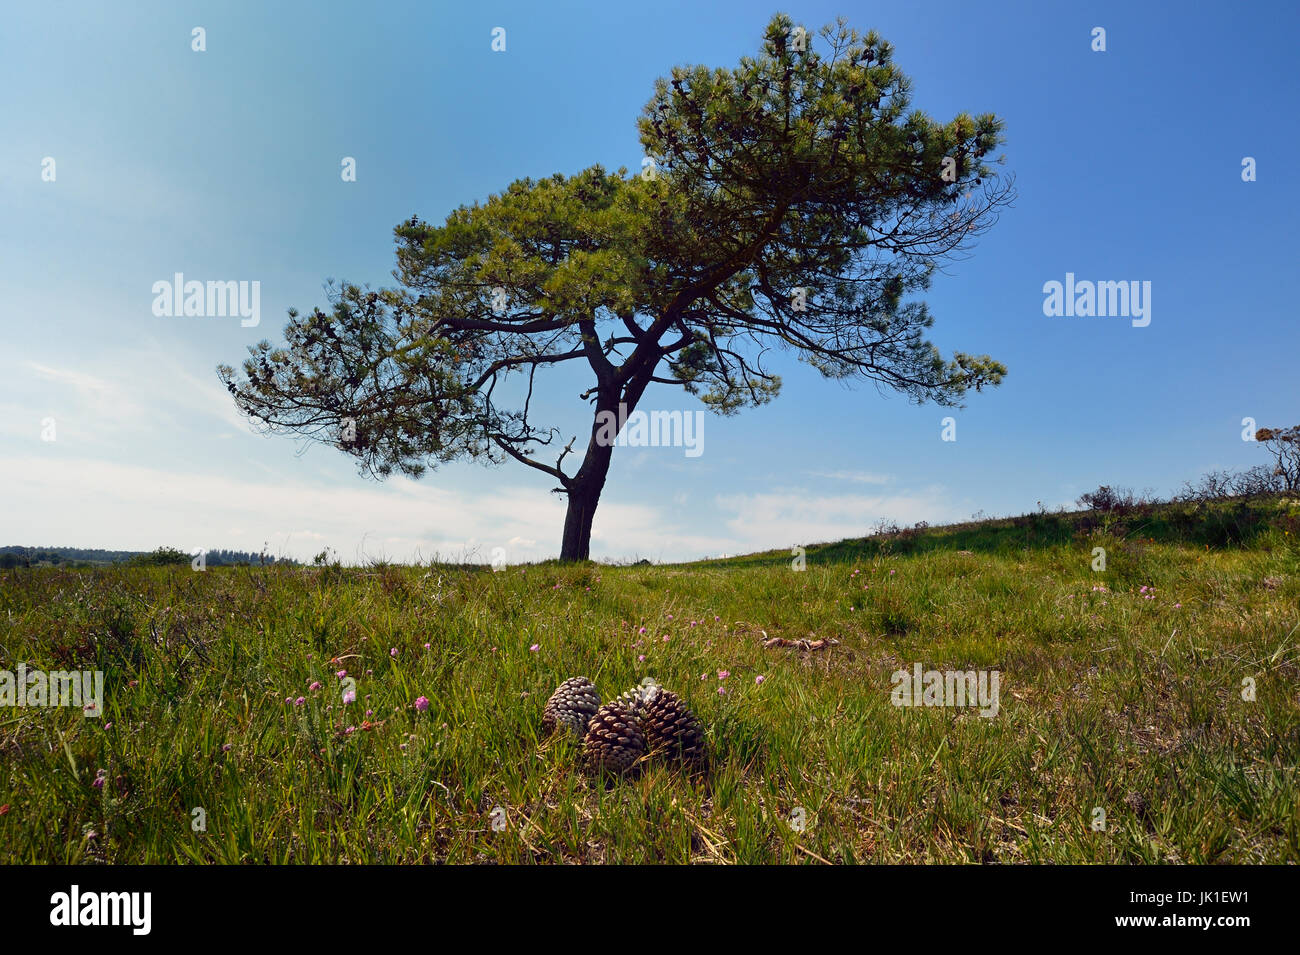 Giant pine cones lie under a Pine tree - Stock Image